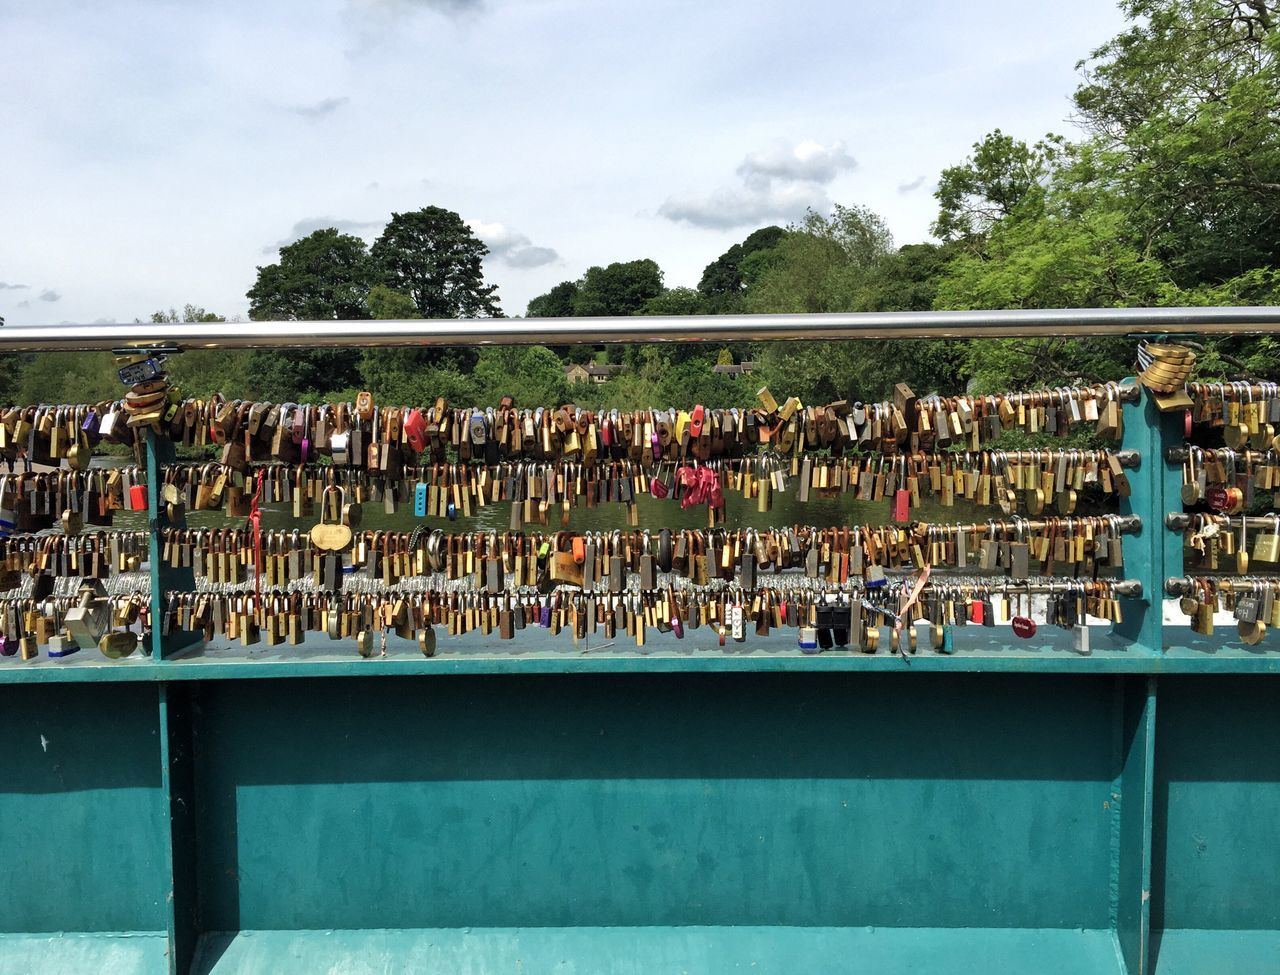 Large Group Of People Railing Padlock Love Lock Security Bridge - Man Made Structure Day Sky Outdoors Protection Lock Cloud - Sky Unity Water Men Togetherness Hope Architecture Real People Crowd